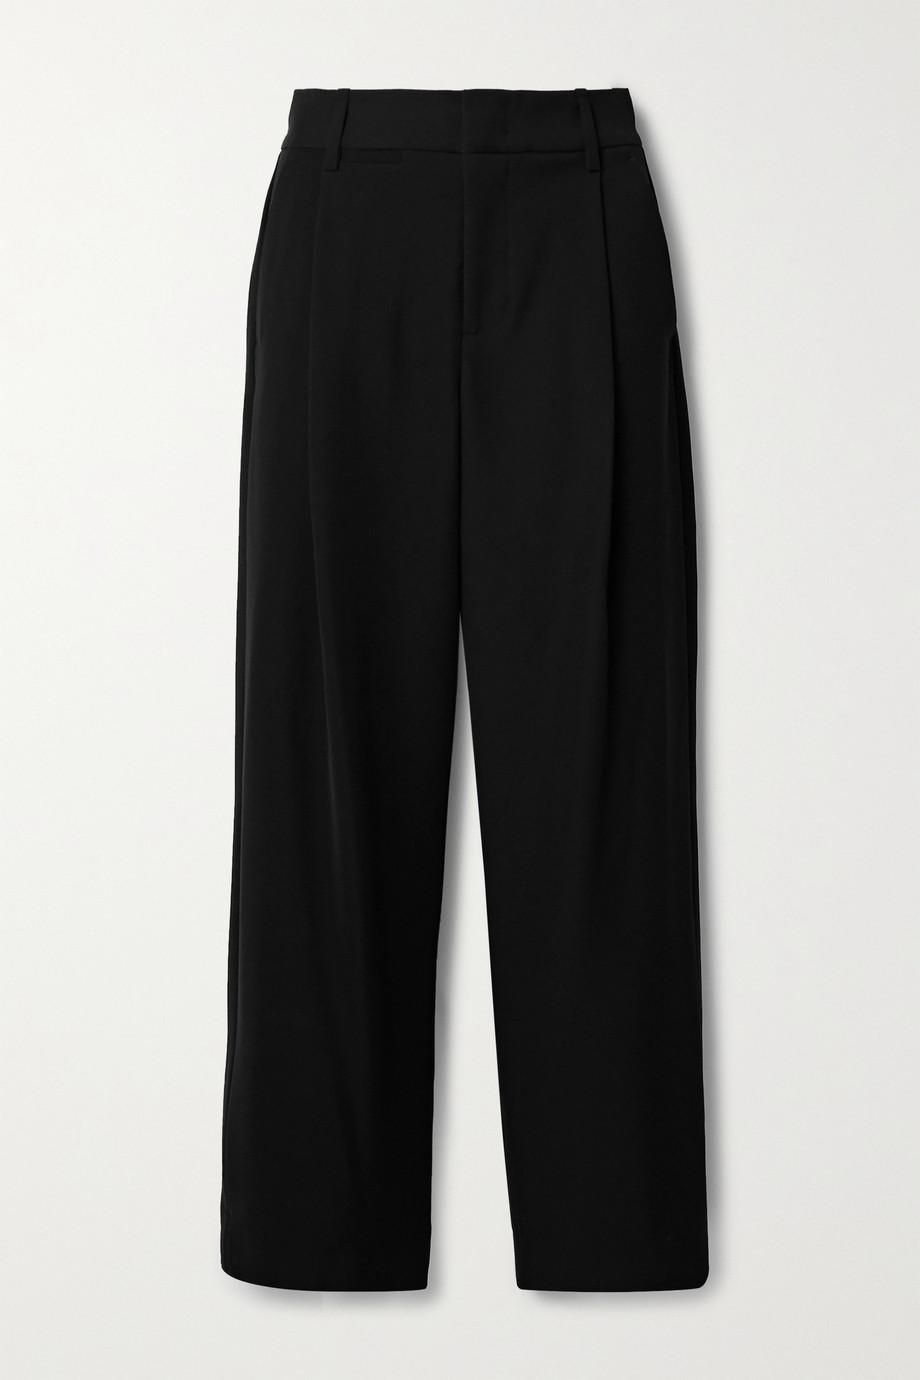 Vince Pleated crepe wide-leg pants